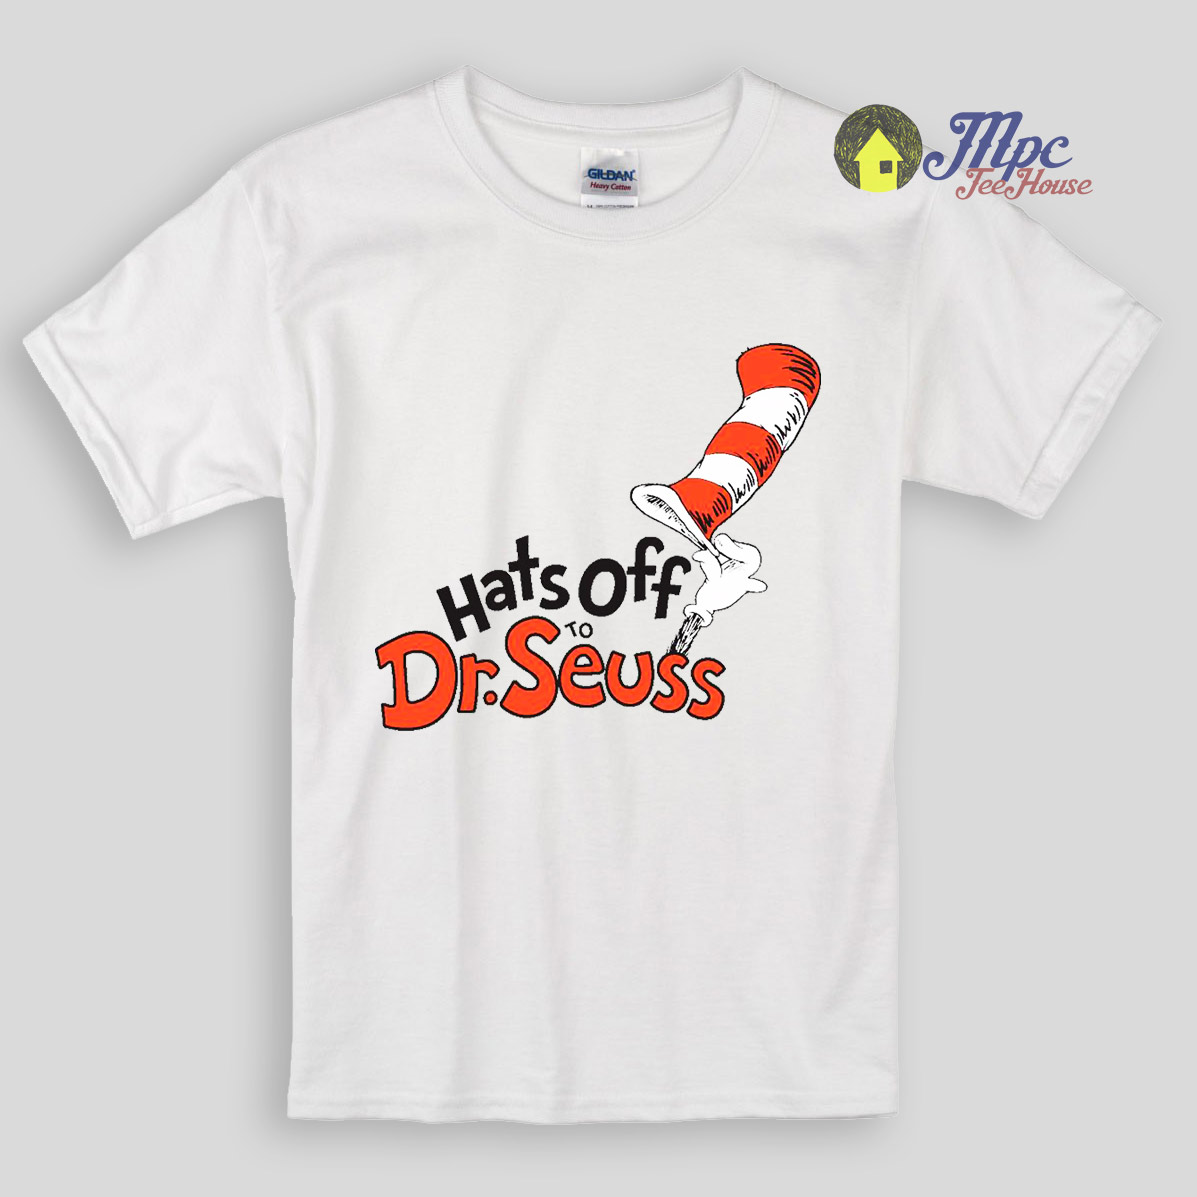 Hats Off Dr Seuss Kids T Shirts | Mpcteehouse: 80s Tees